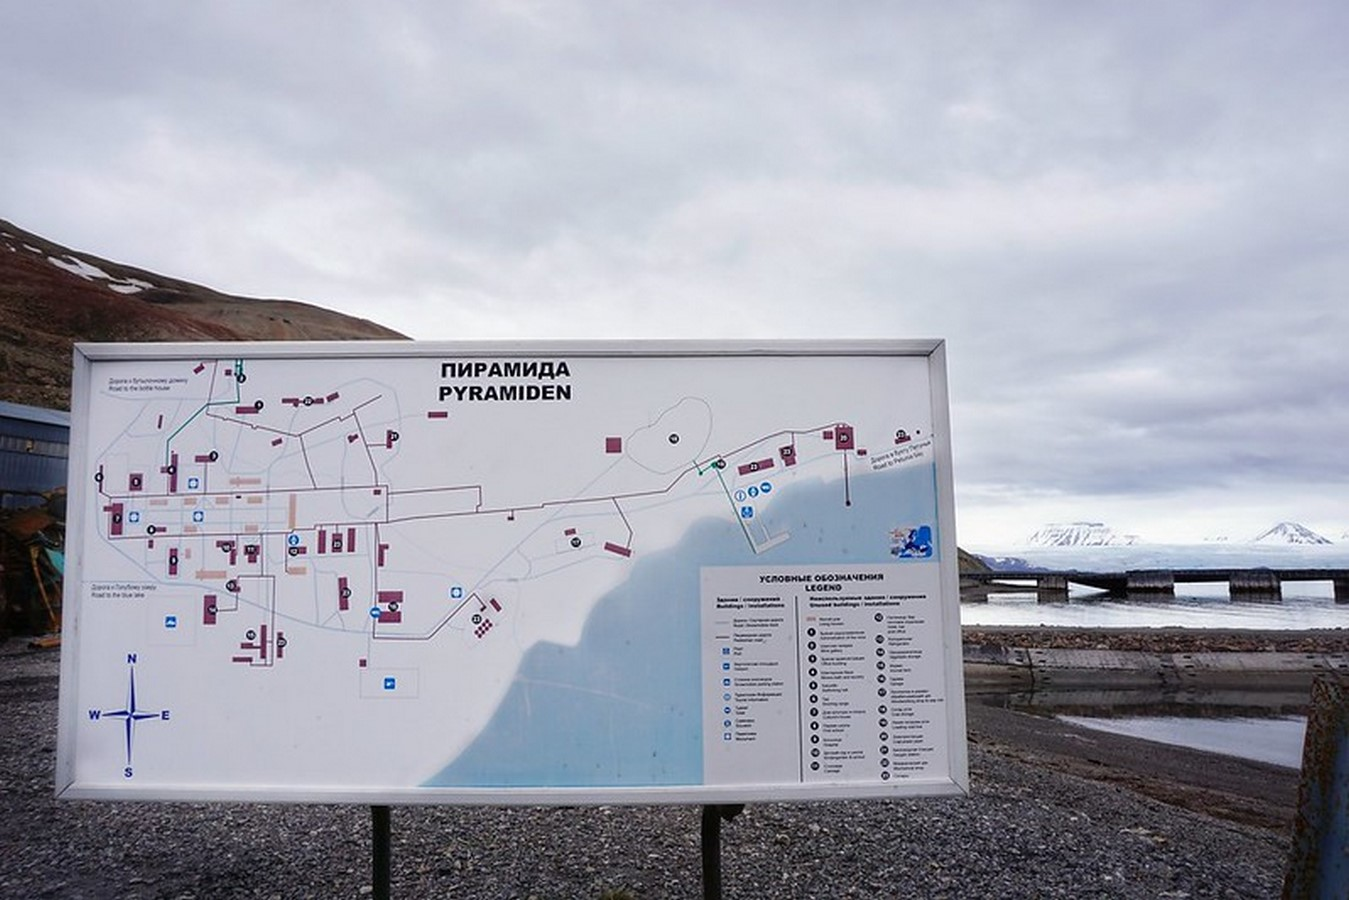 Lost In Time: Pyramiden, Norway - Sheet2